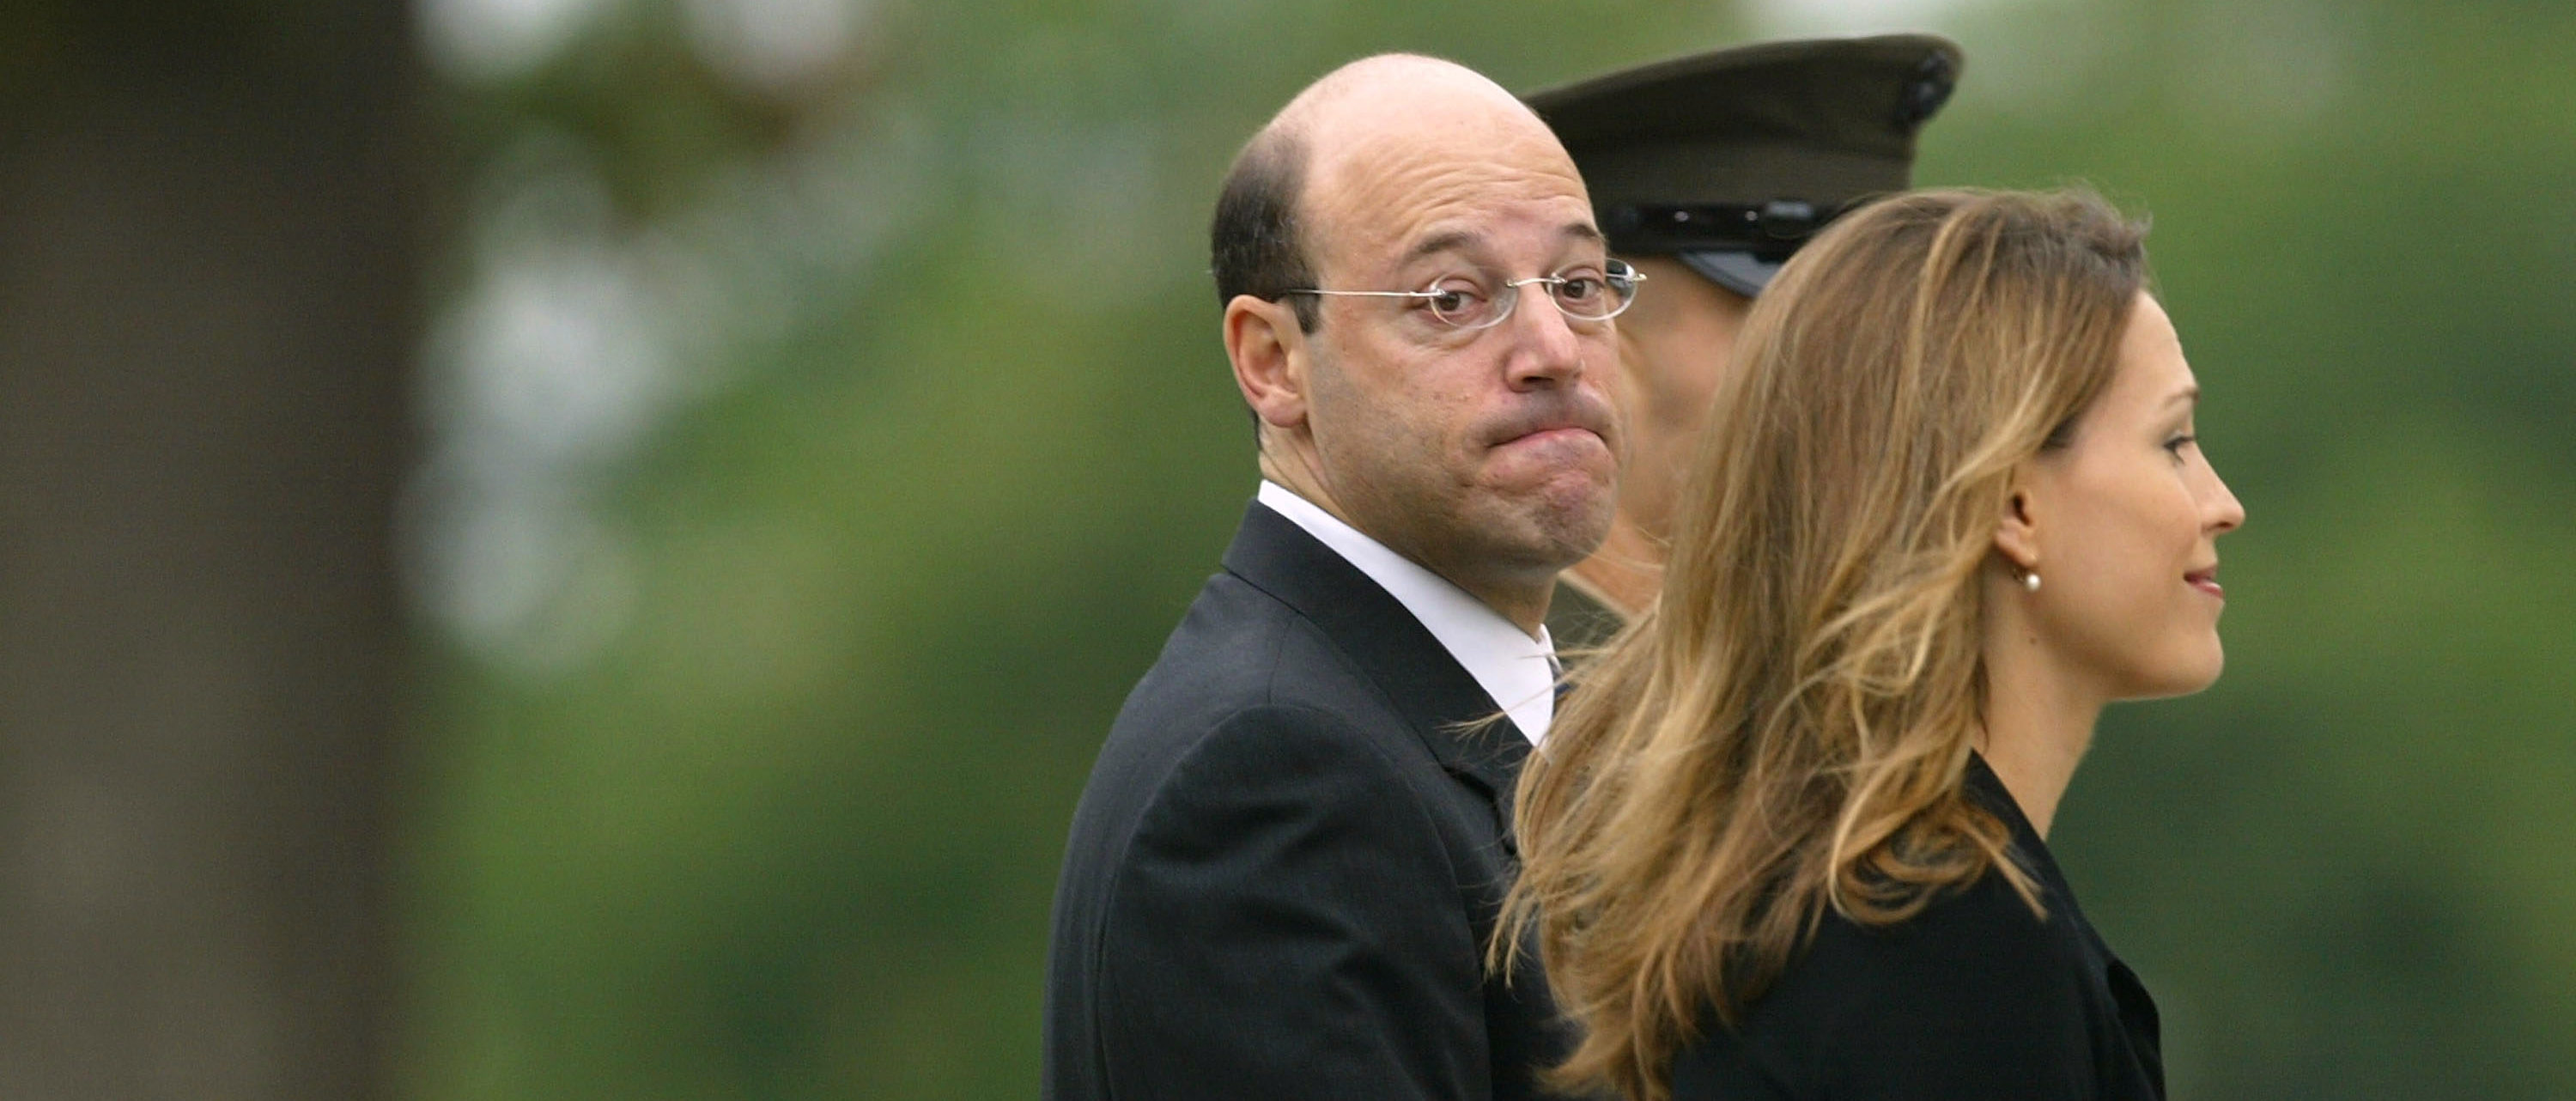 WASHINGTON - JUNE 11:  Former White House Press Secretary Ari Fleischer enters the National Cathedral for the State Funeral of former President Ronald Reagan June 11, 2004 in Washington, DC. Reagan will be laid to rest during a sunset funeral at the Reagan Library in Simi Valley, California.  (Photo by Spencer Platt/Getty Images)